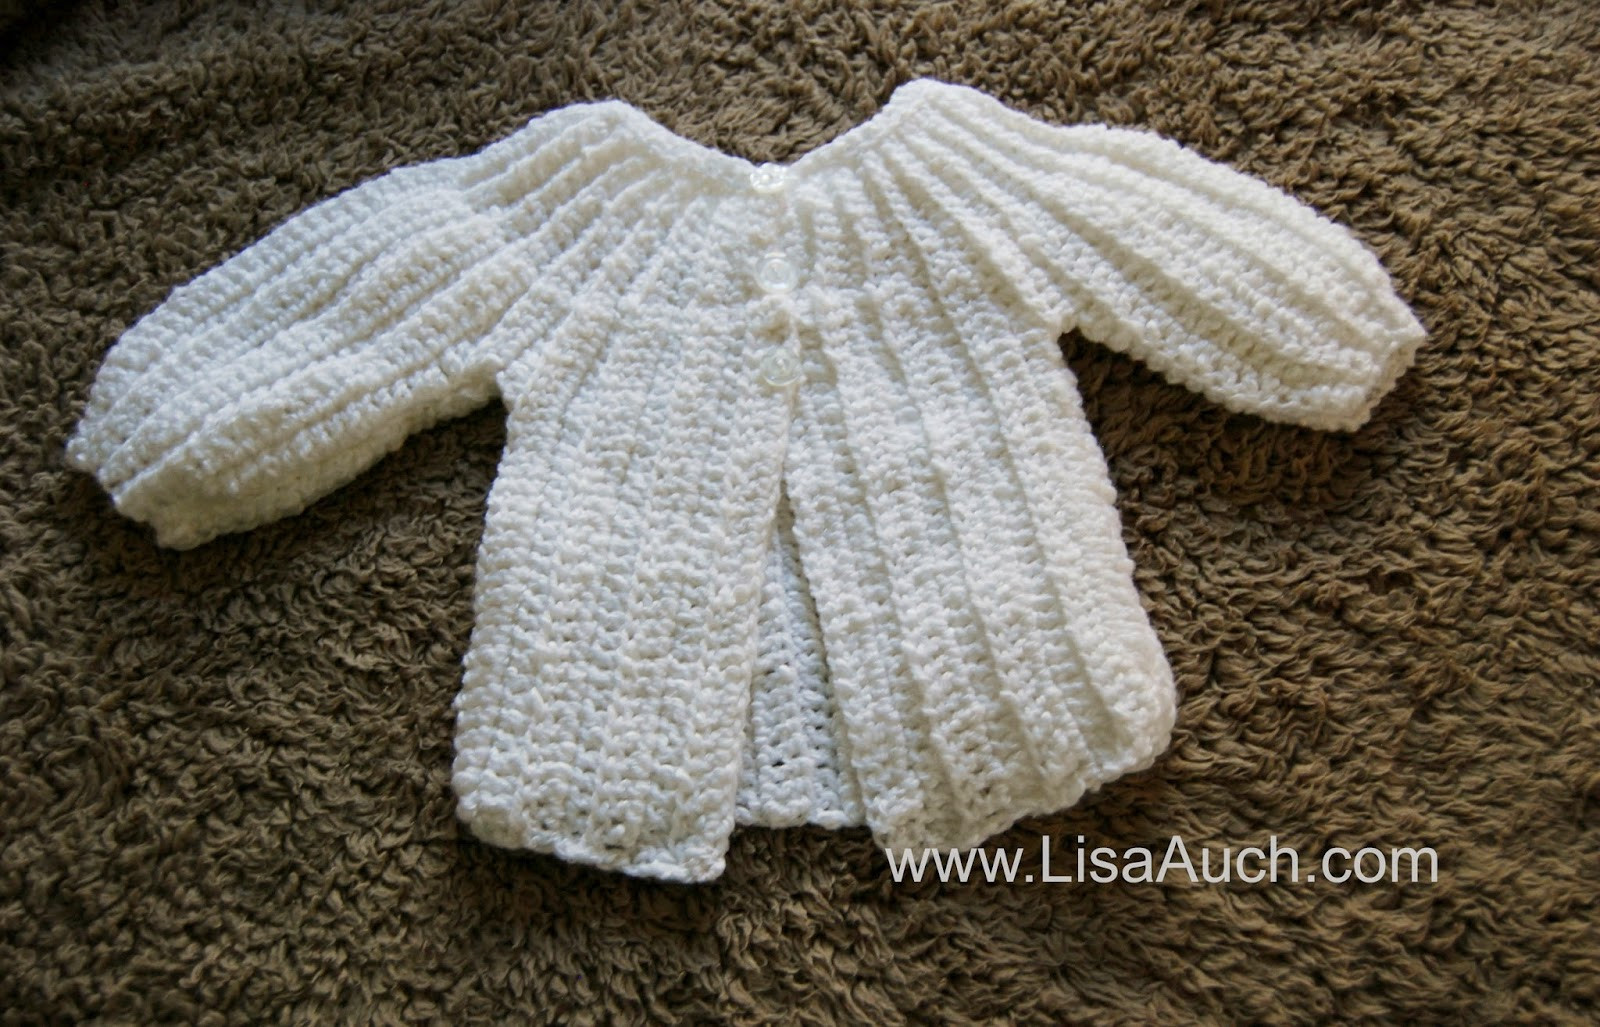 Beautiful Free Crochet Patterns and Designs by Lisaauch Free Free Crochet Baby Sweater Patterns Of Wonderful 40 Images Free Crochet Baby Sweater Patterns